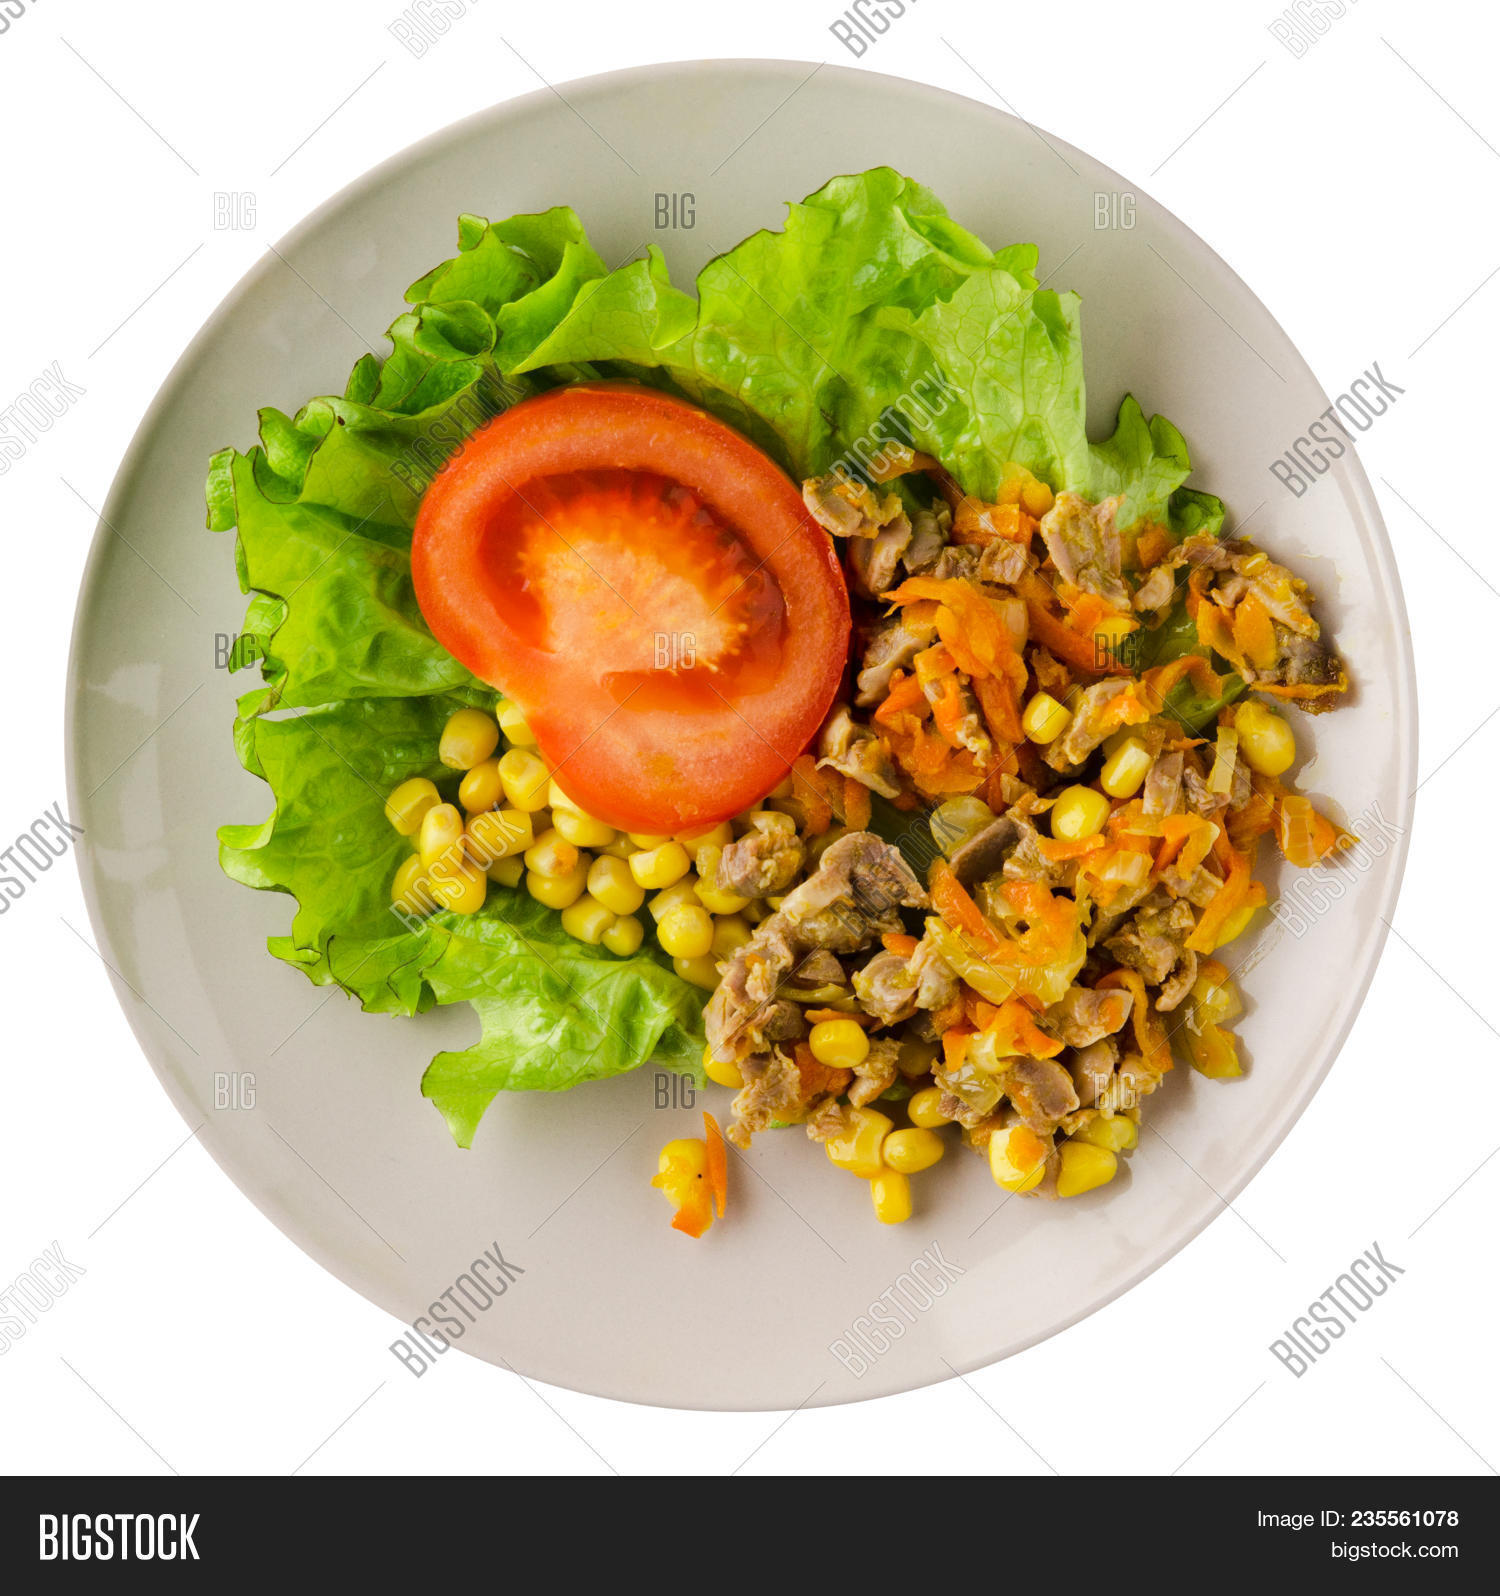 animal,appetizer,arugula,baked,board,boiled,carrot,chicken,chinese,cooking,corn.,cuisine,diet,dinner,dish,edible,food,fresh,gizzard,green,grilled,healthy,herbs,hot,ingredient,isolated,italian,leaf,lettuce,meal,meat,mix,nobody,oil,onion,pieces,plate,portion,red,roasted,rustic,salad,soup,stomach,tasty,tomato,traditional,vegetable,wooden,yellow